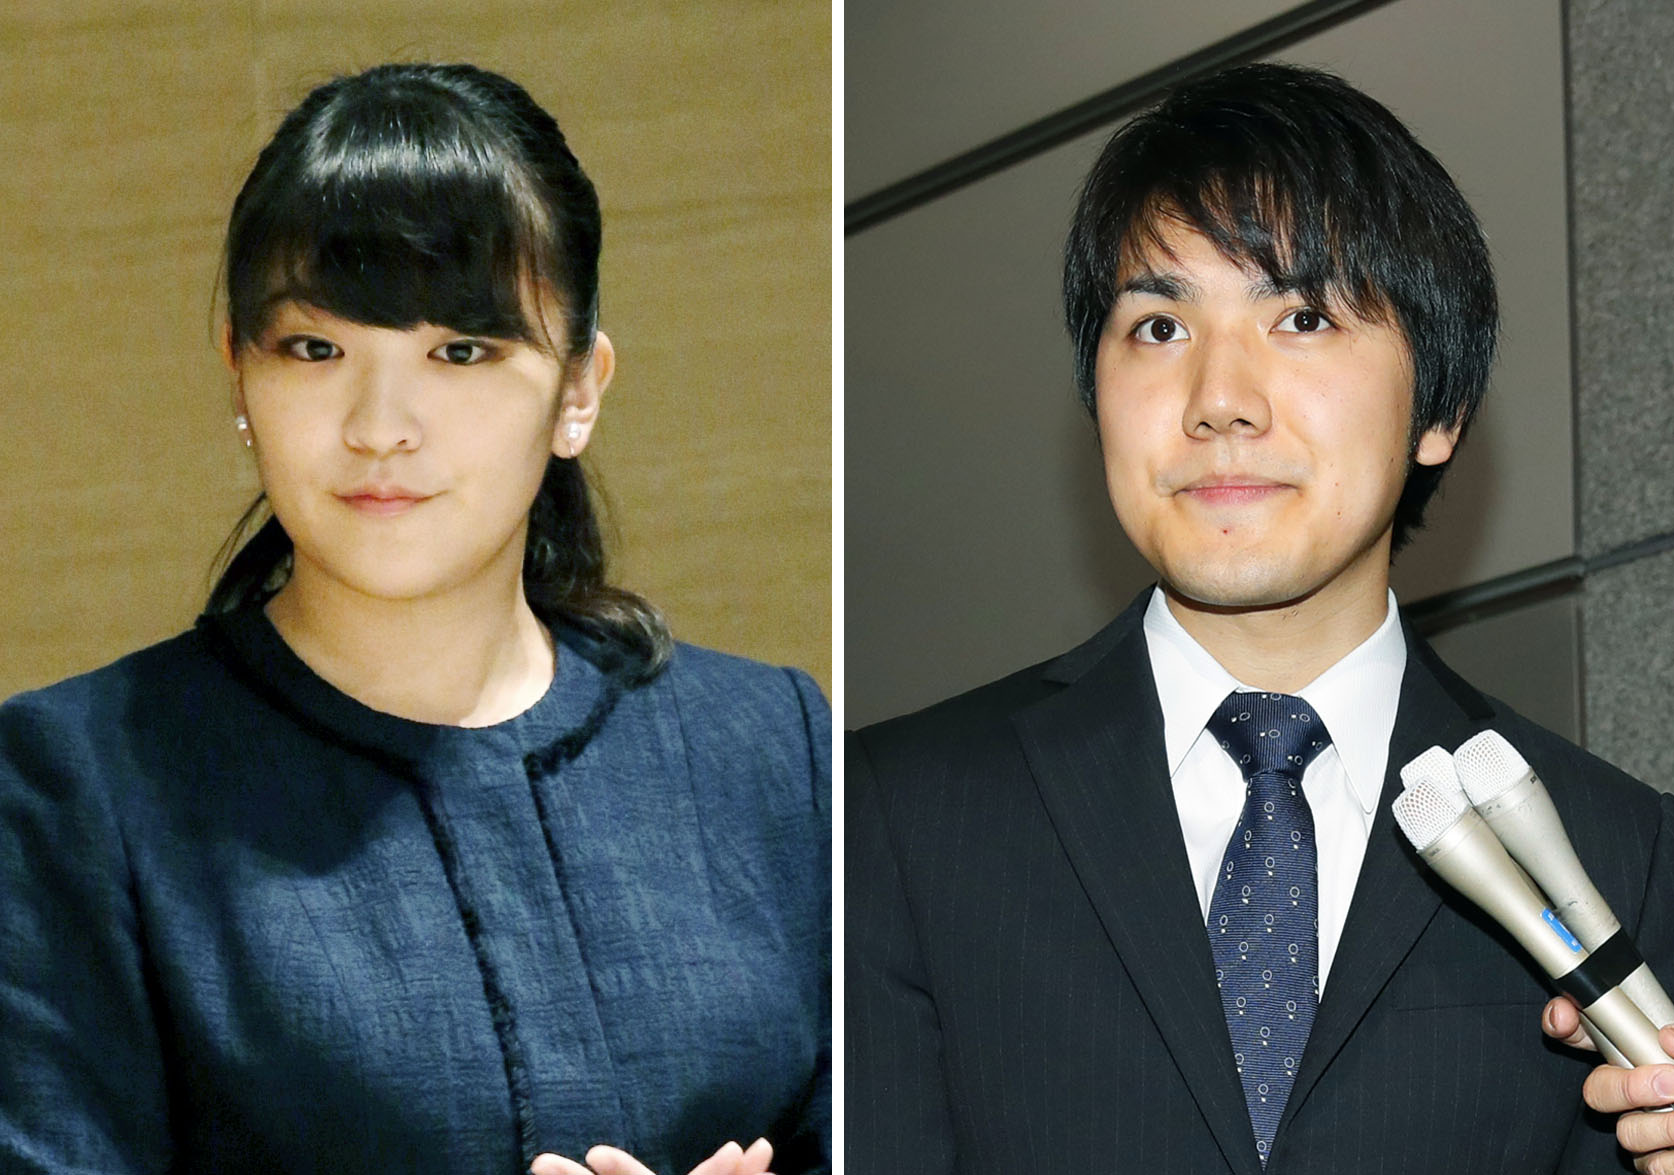 Combined photo shows Japan's Princess Mako (L), and soon-to-be fiance Kei Komuro.